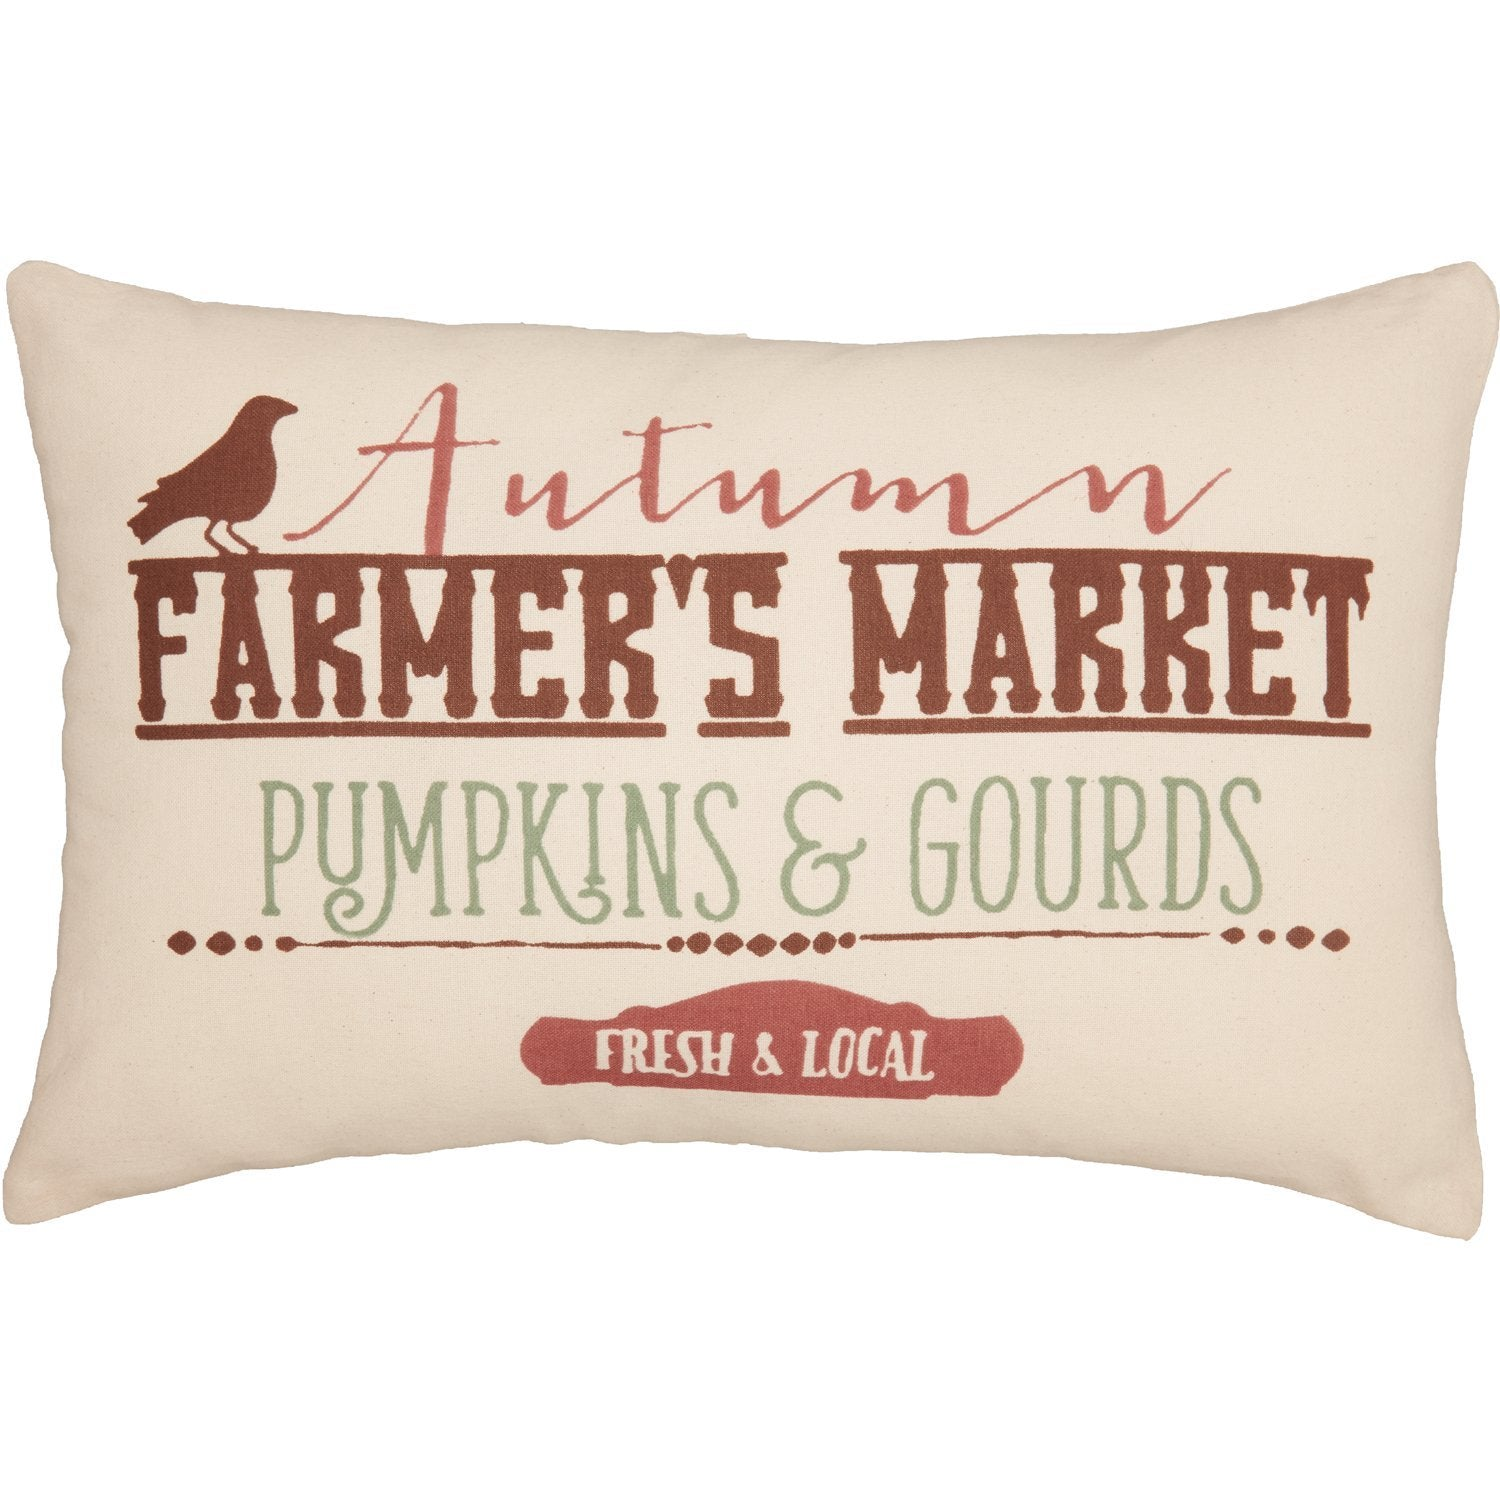 Farmer's Market Harvest Pillow.